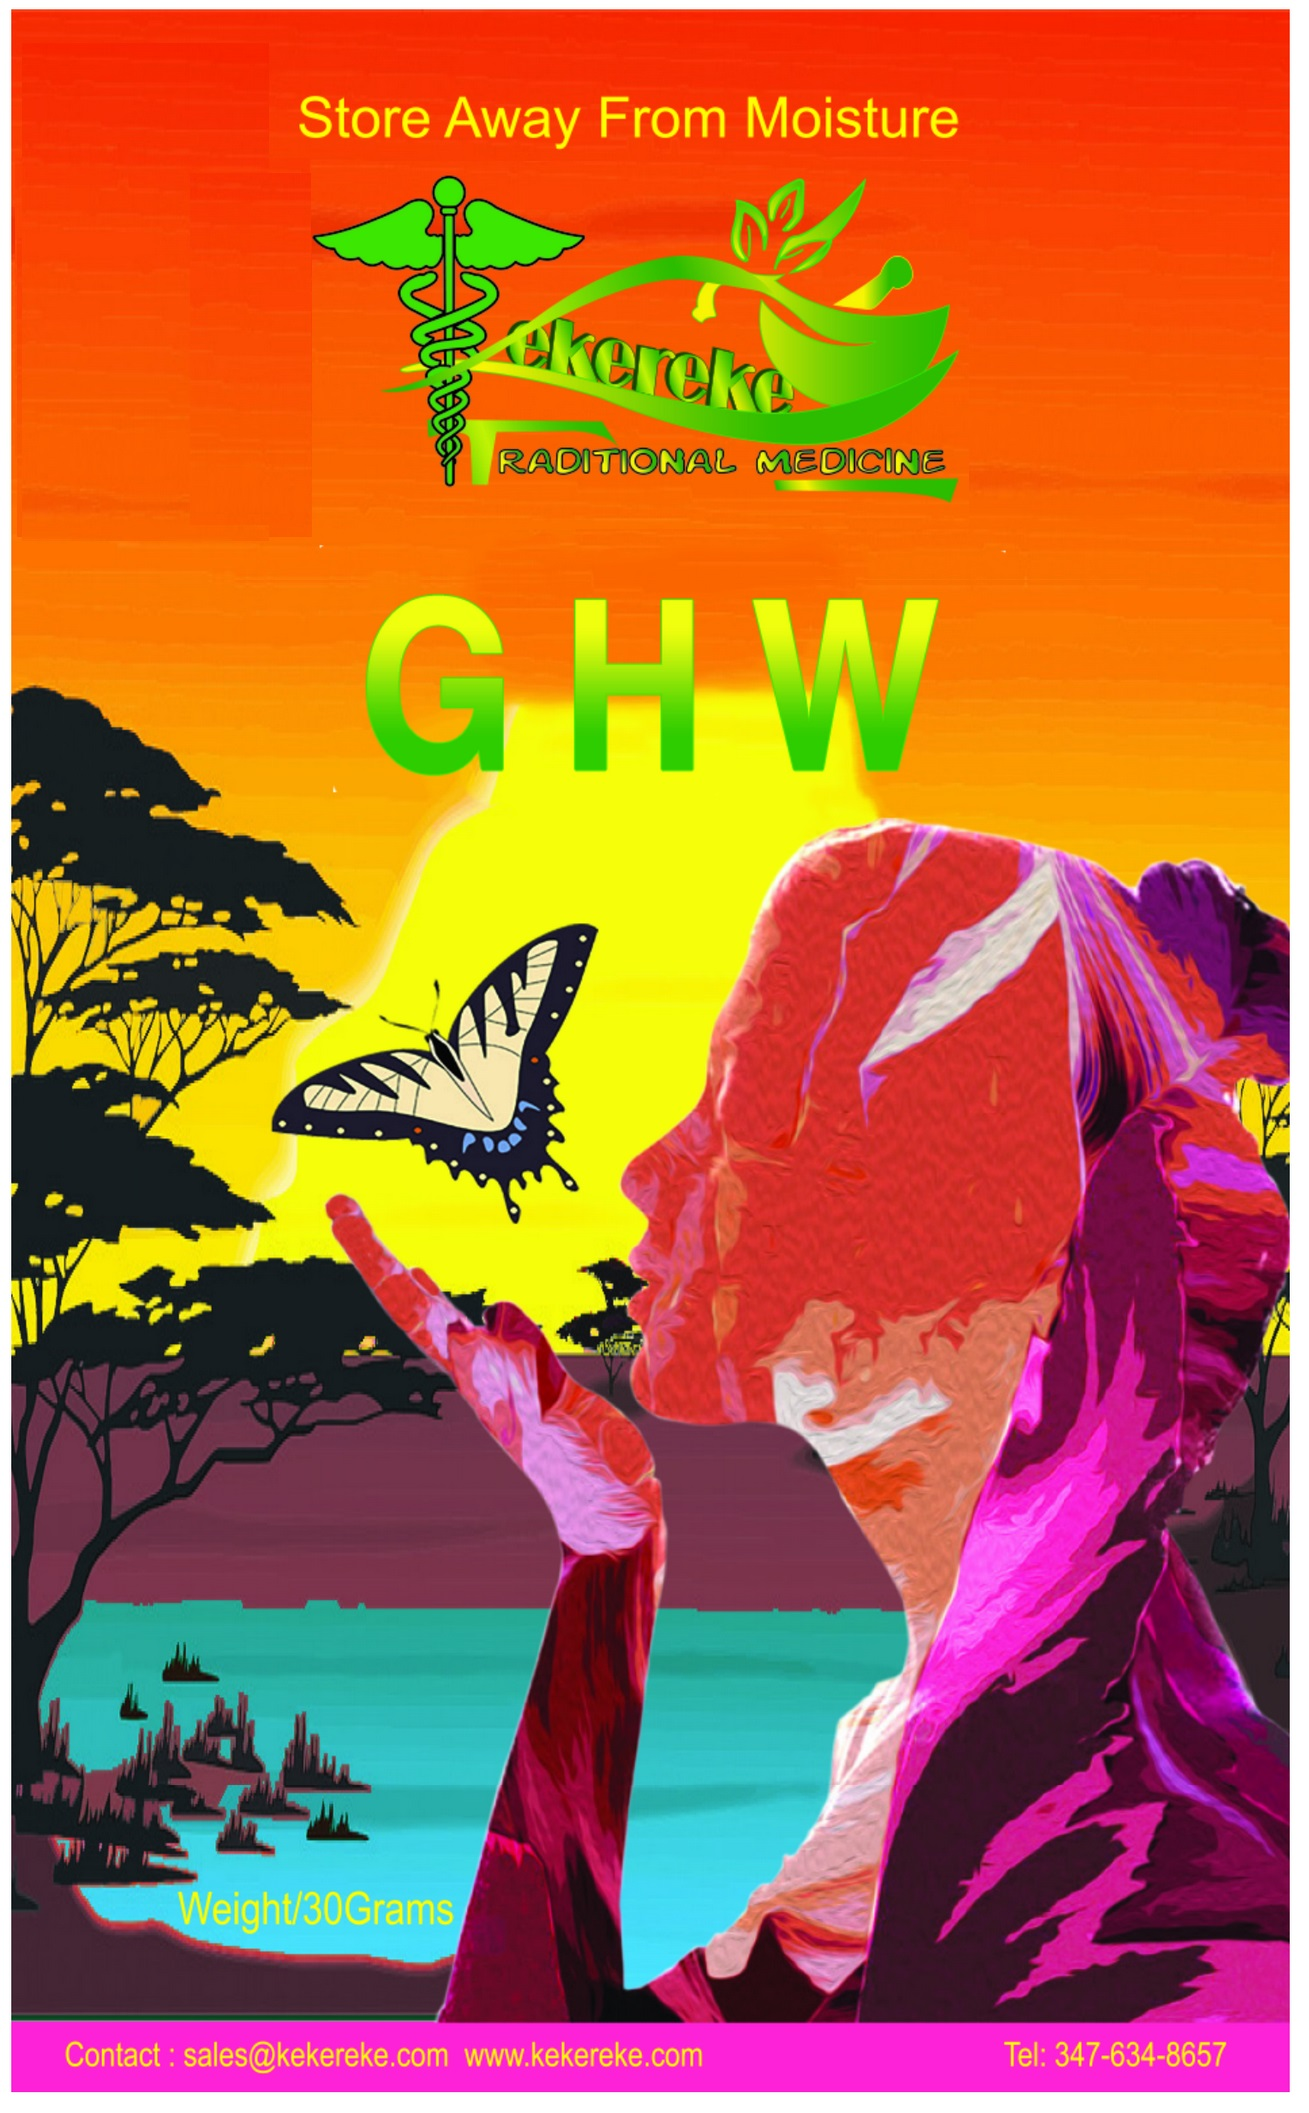 GHW Product - Breast Cancer - G.H.W